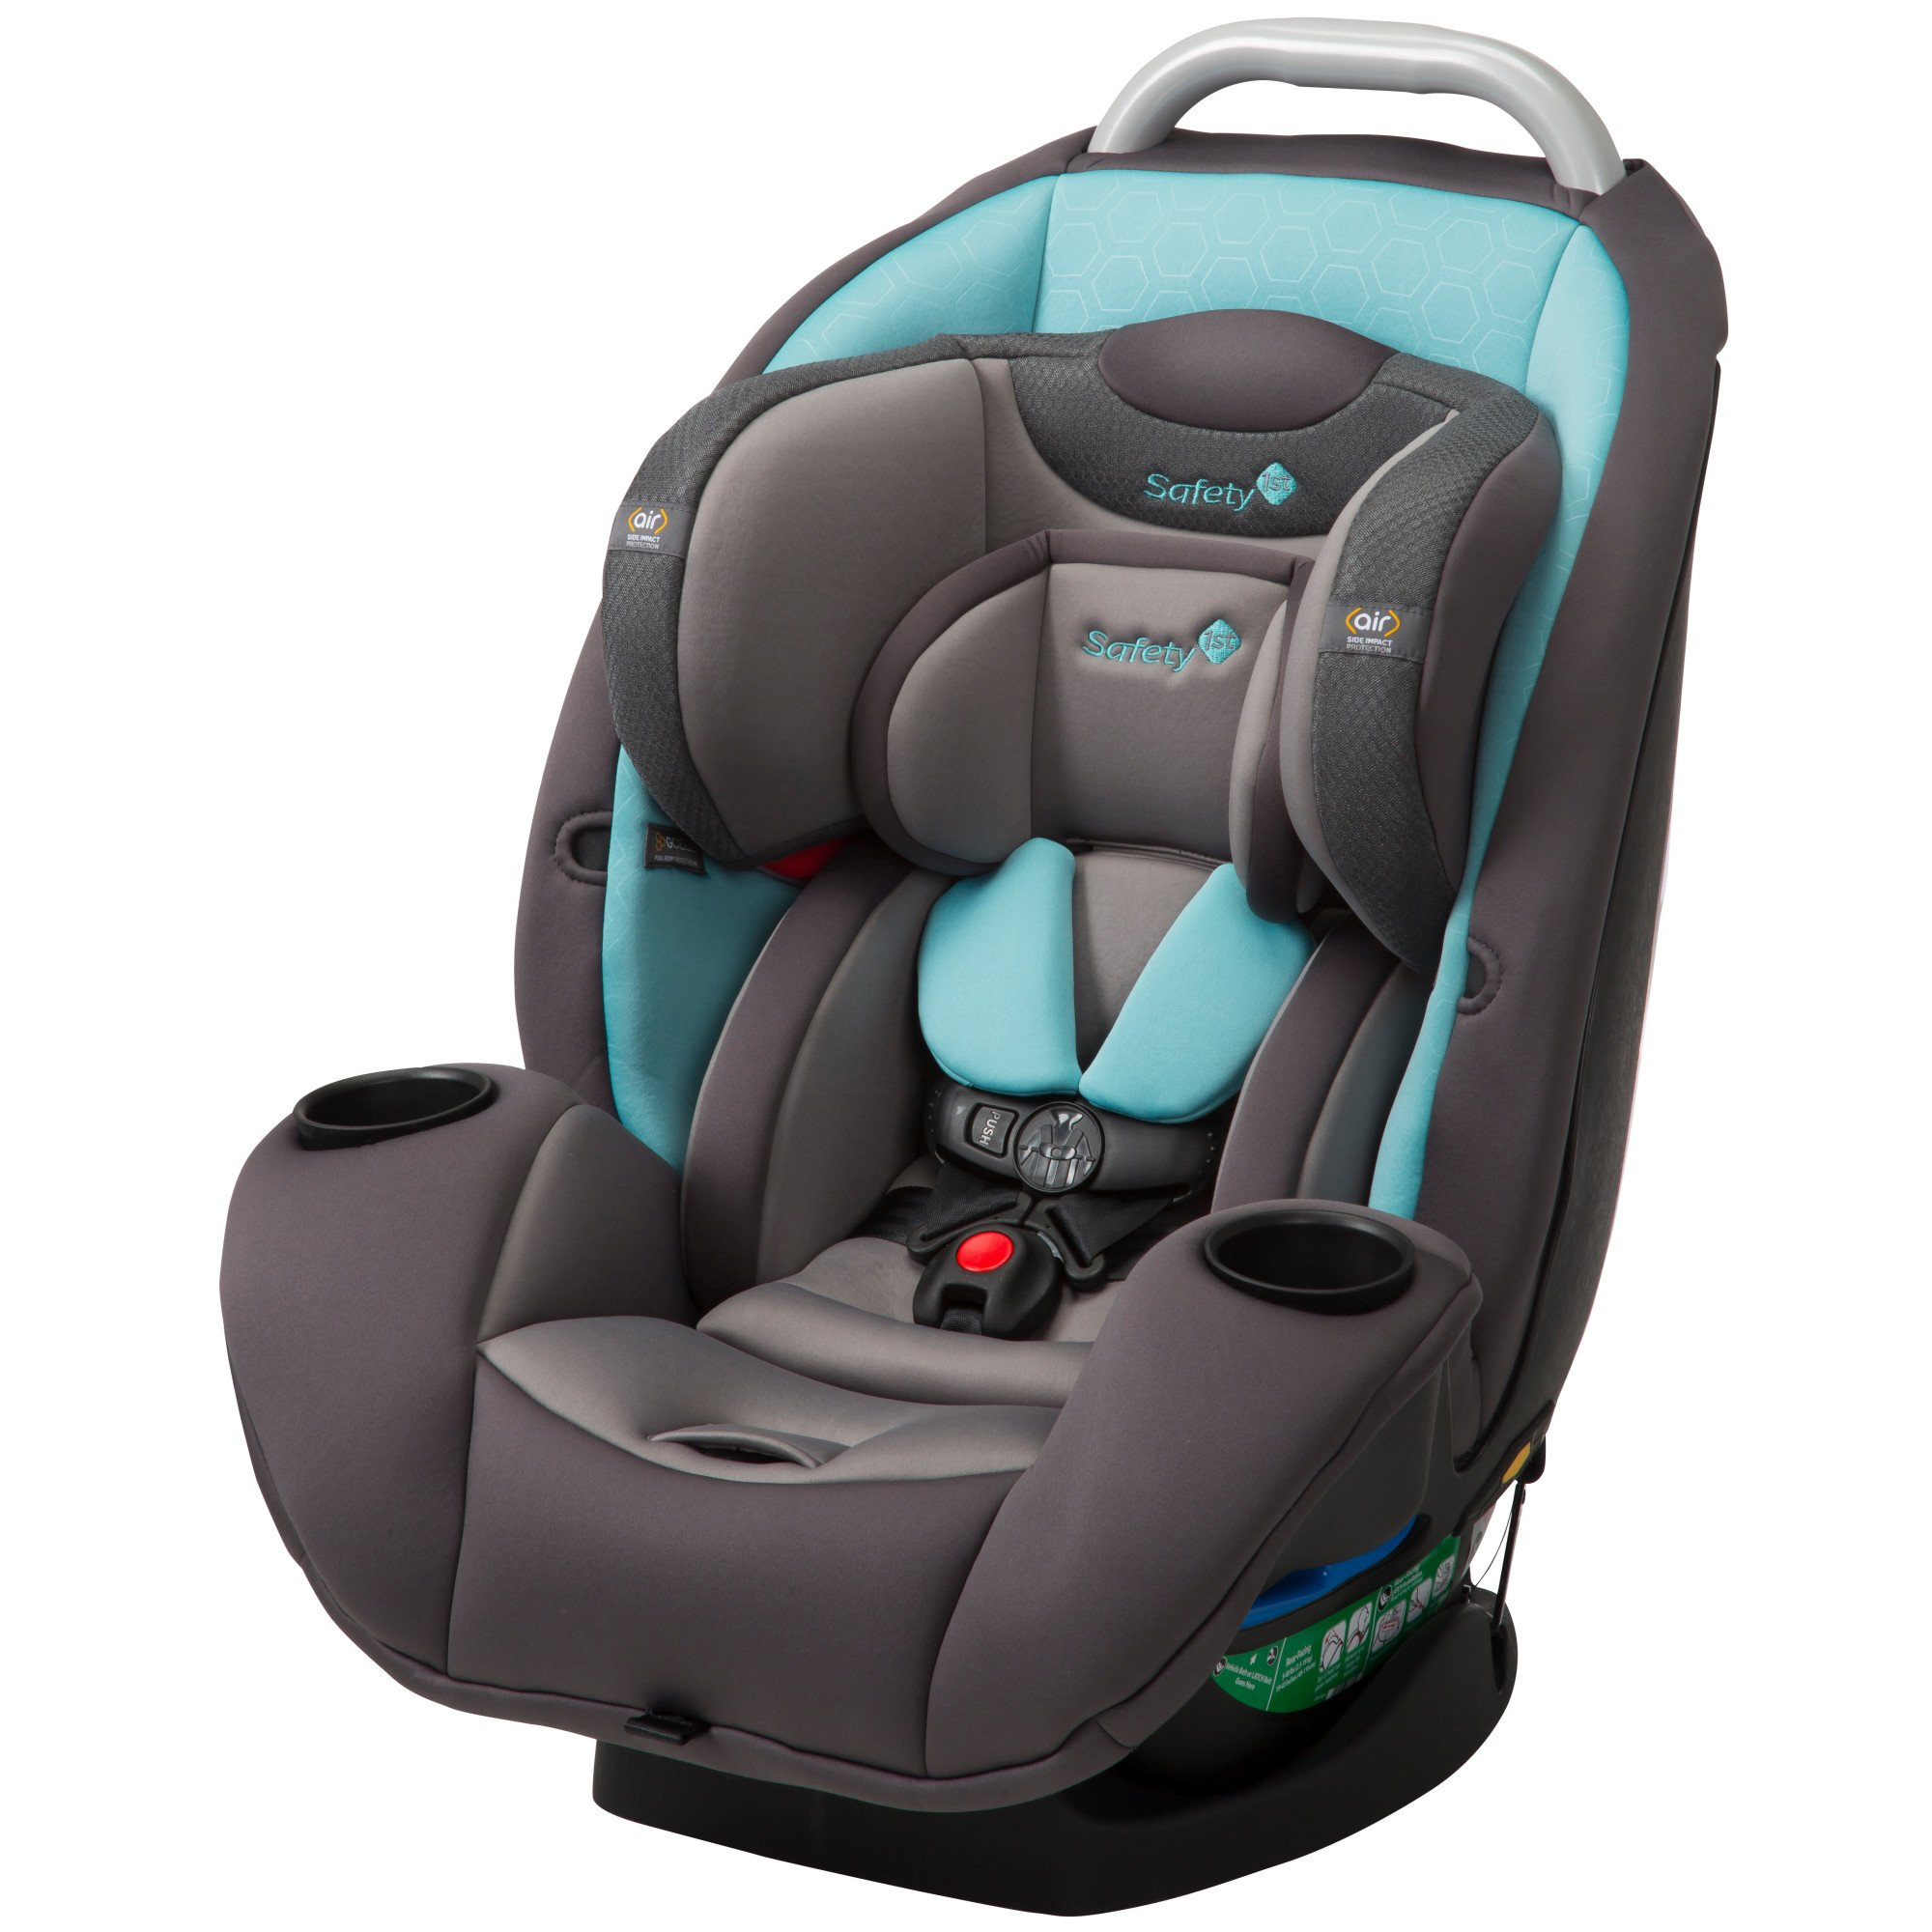 Get Quotations Safety 1st UltraMax Air 360 4 In 1 Convertible Car Seat Aqua Mist HX